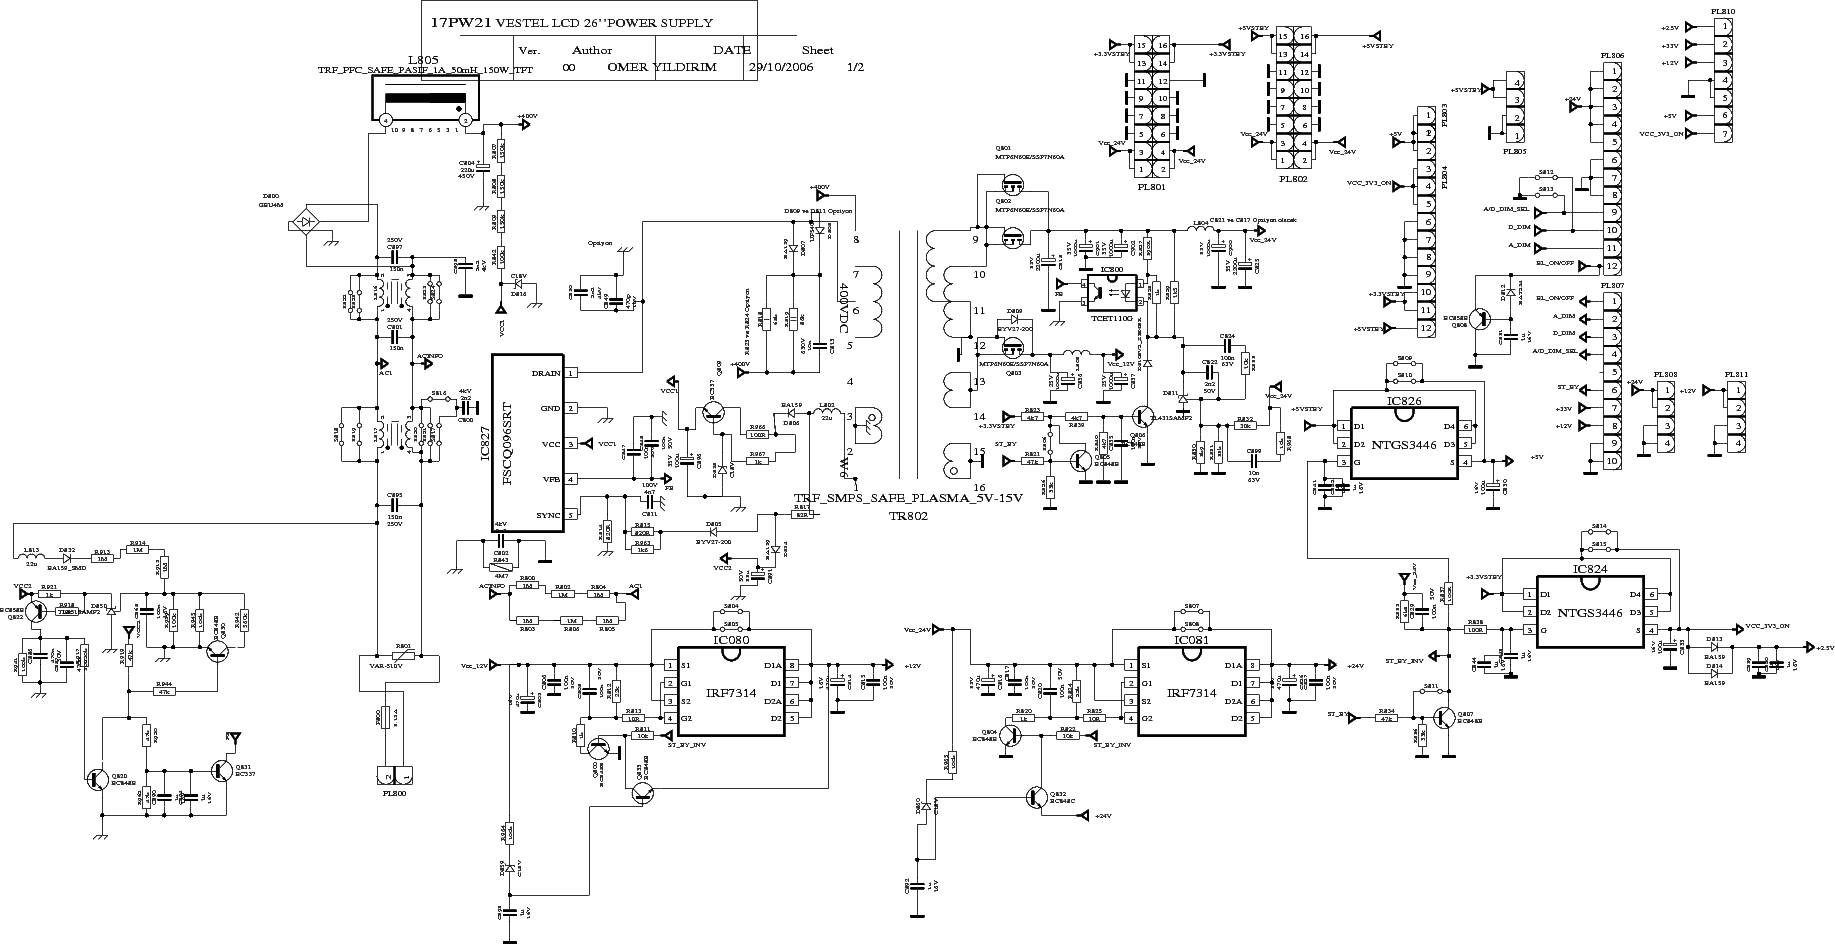 Power Supply Wiring Diagram Diagrams Auto Fuse Box Diagram